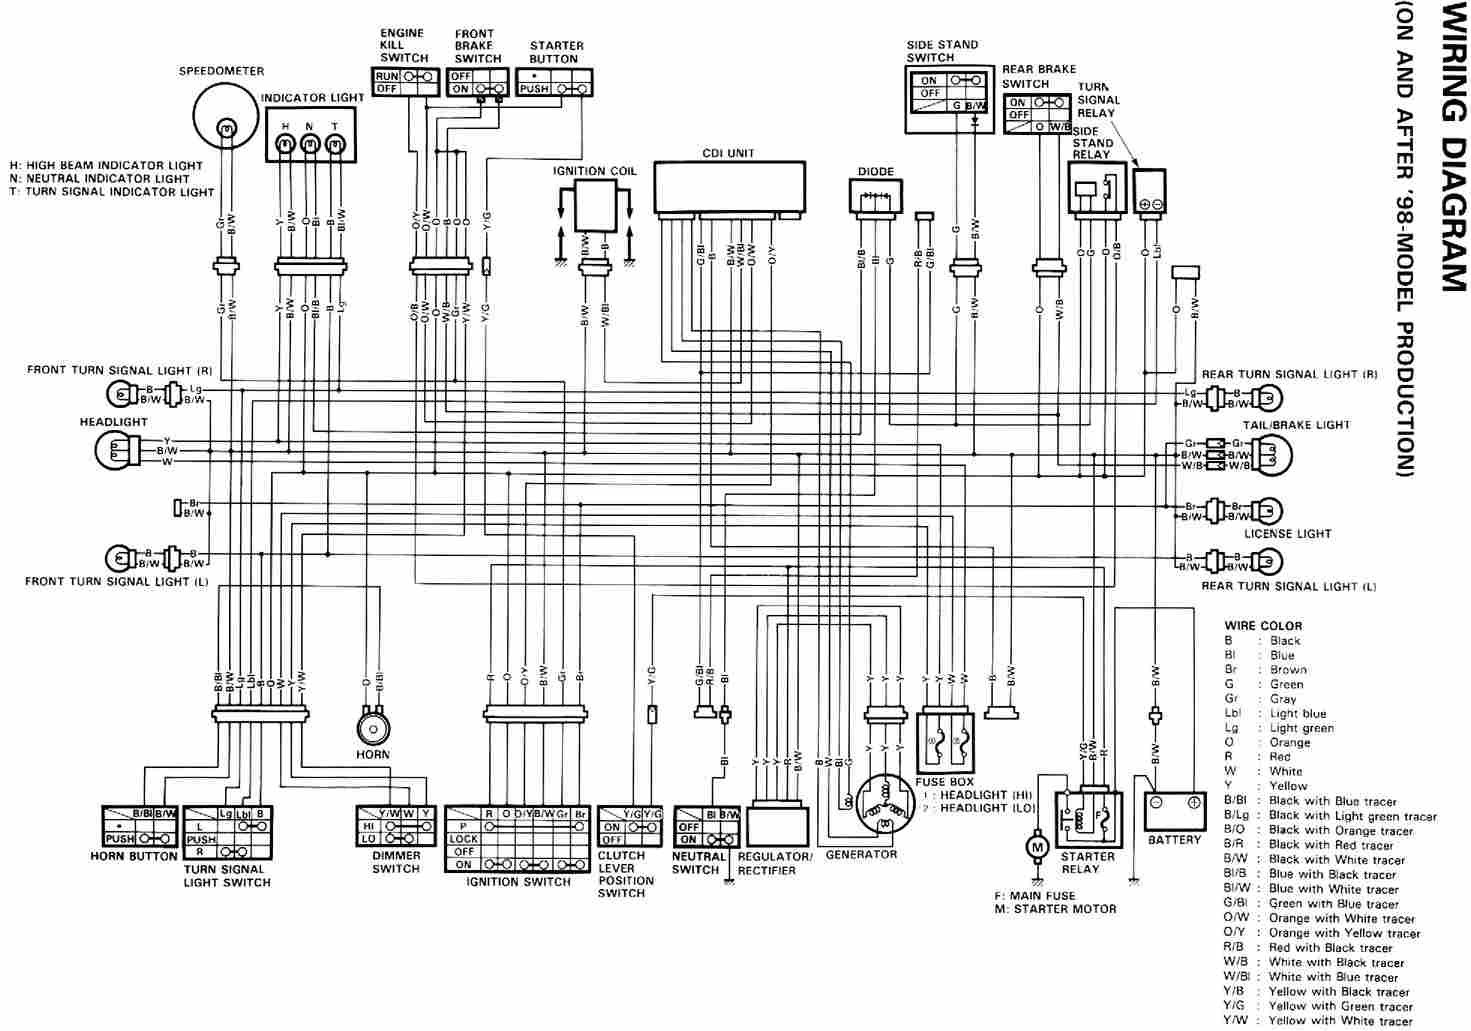 Suzuki DR650 1998 Motorcycle Wiring Diagram | All about ...